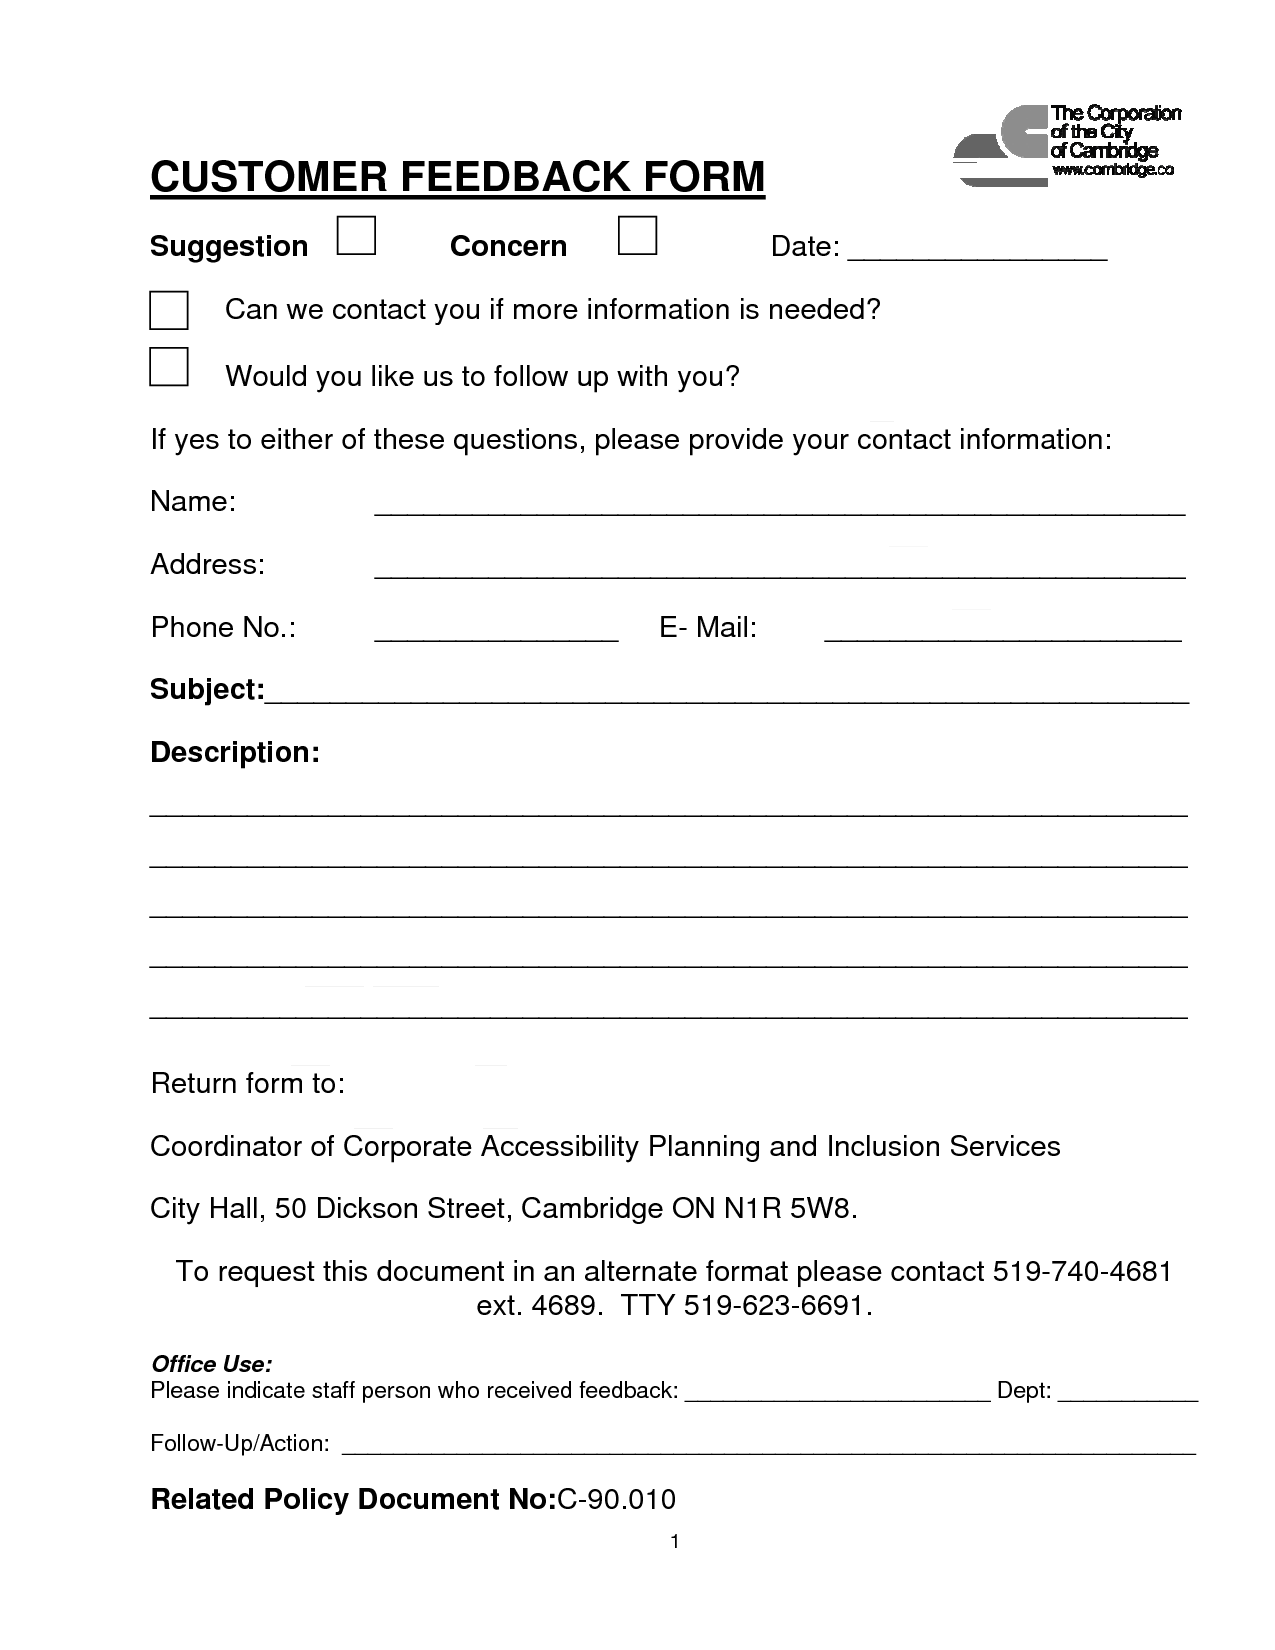 Doc460595 Employee Suggestion Forms Employee Suggestion Form – Employee Suggestion Form